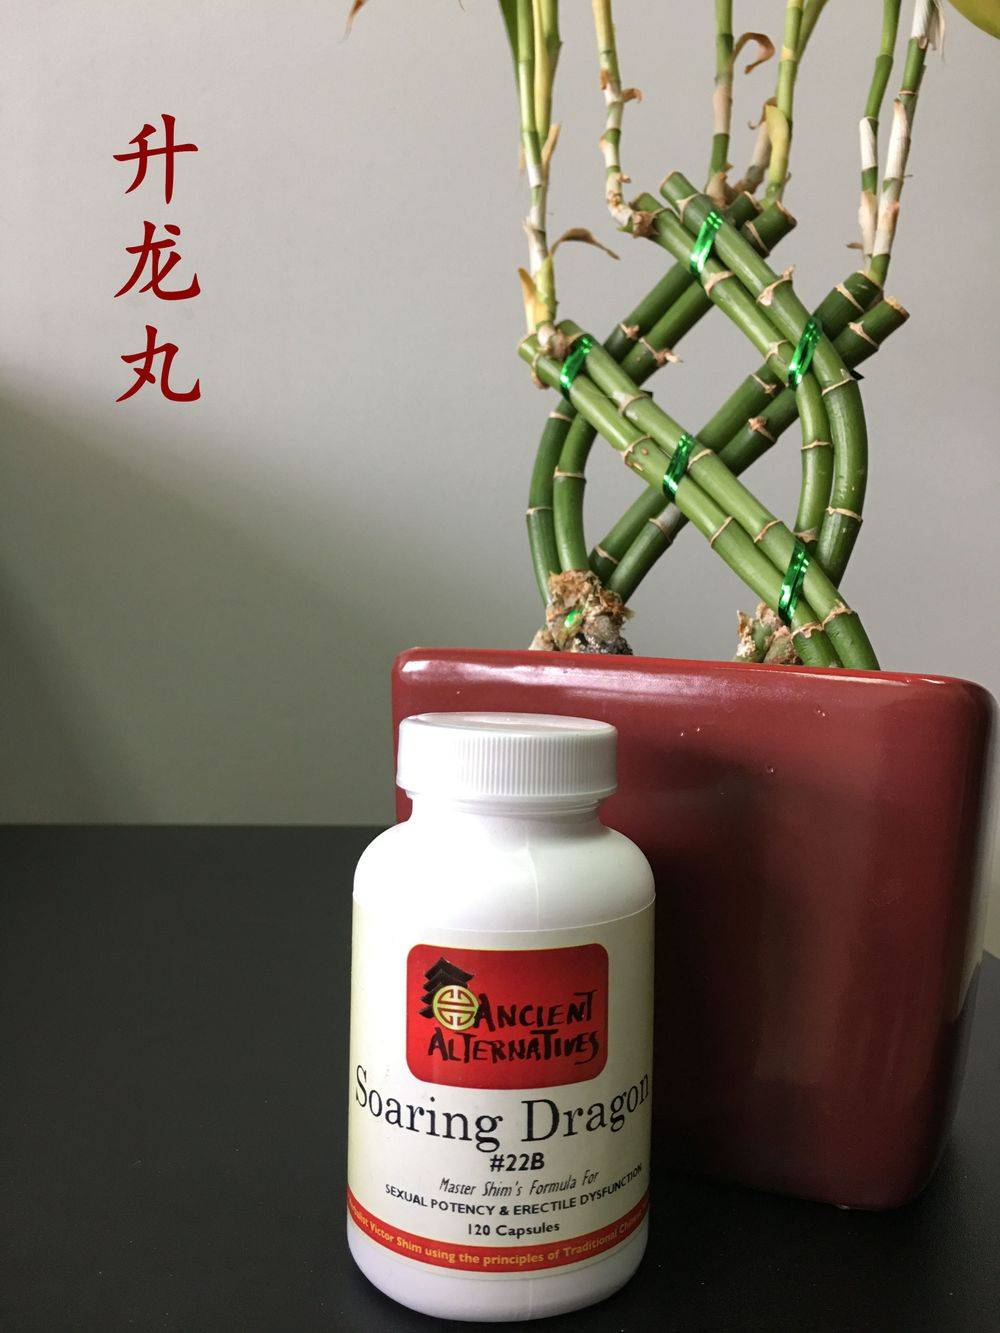 Improve circulation in the lower part of the body; enhance sexual potency and correct erectile dysfunction; promote long lasting erection. (120 capsules)